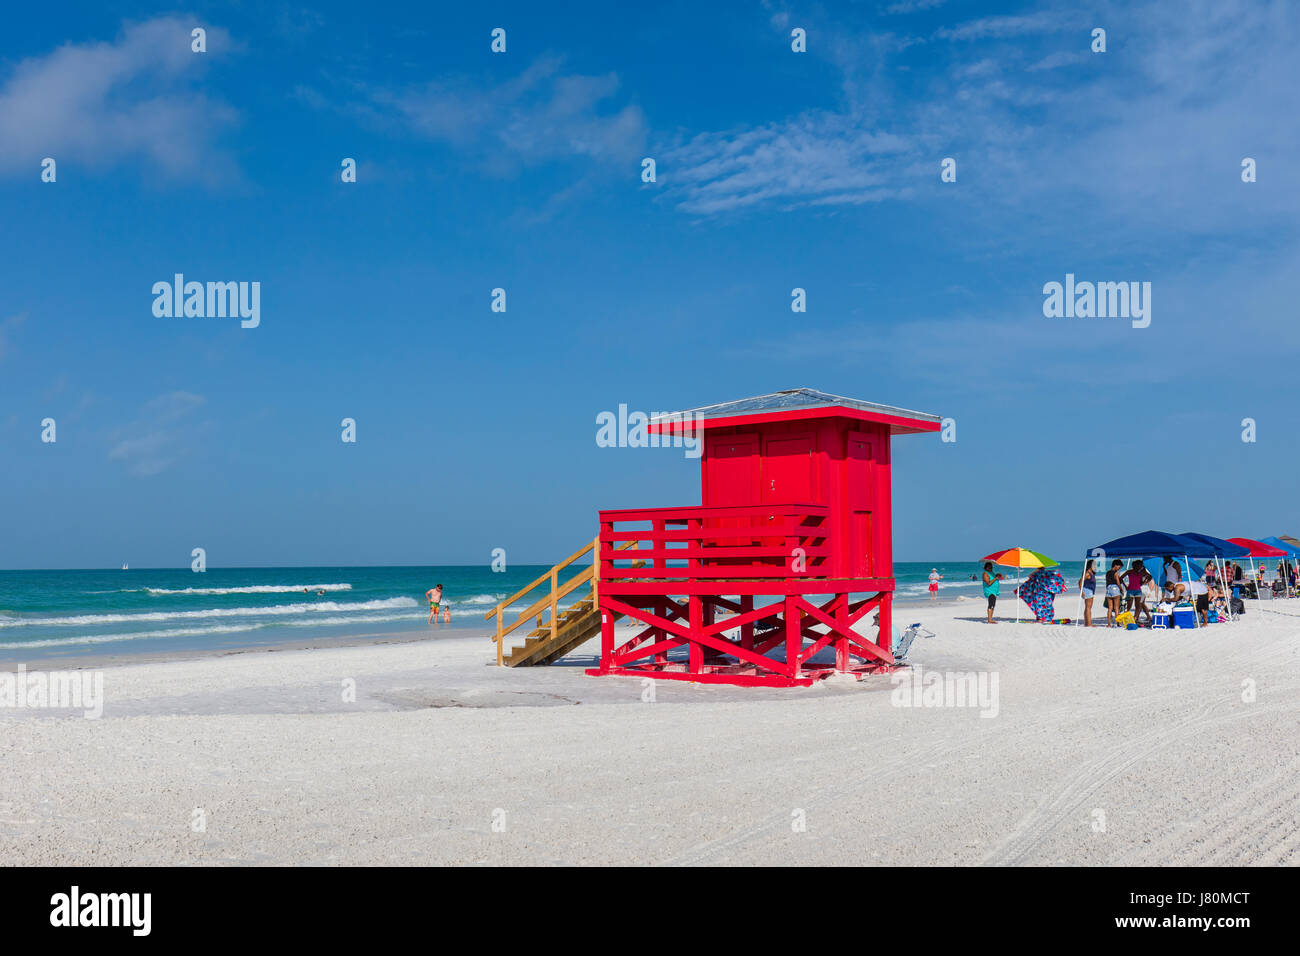 Red Lifeguard tower Siesta Key Beach number 1 beach in US on the Gulf of Mexico in Sarasota Florida - Stock Image